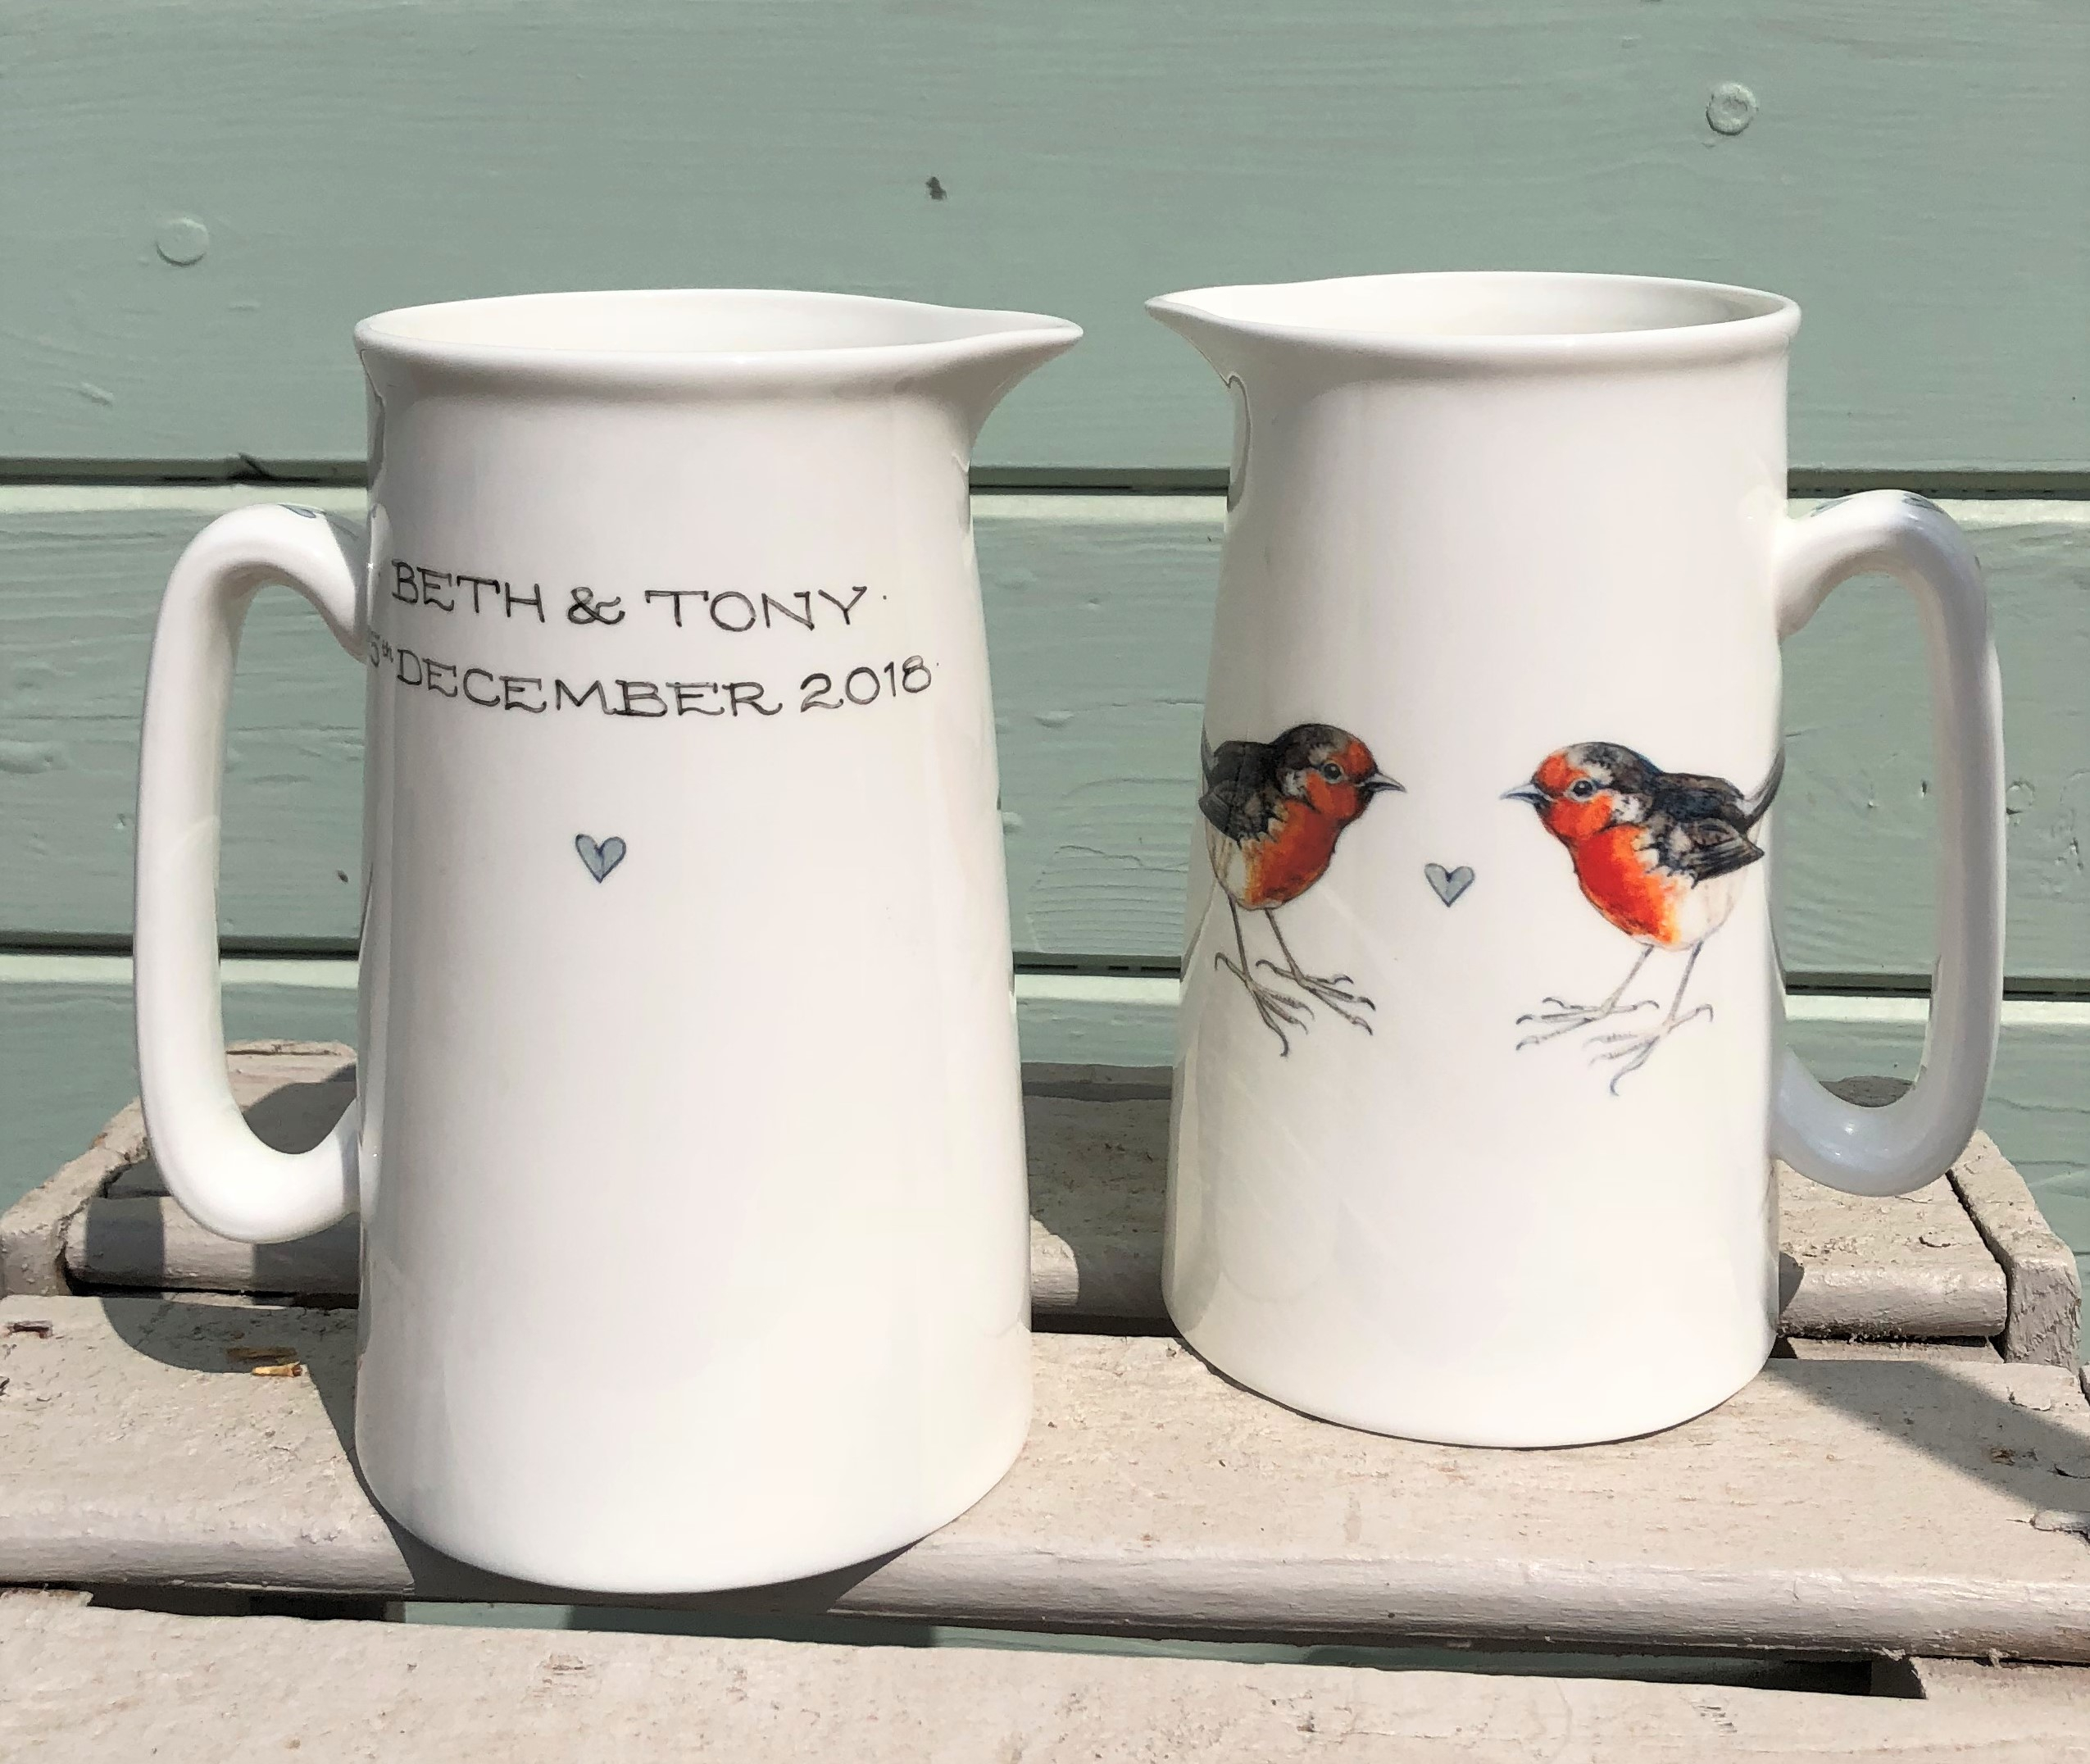 Robin 2 Pint Jug with hand painted inscription. From £24.50, other sizes available.